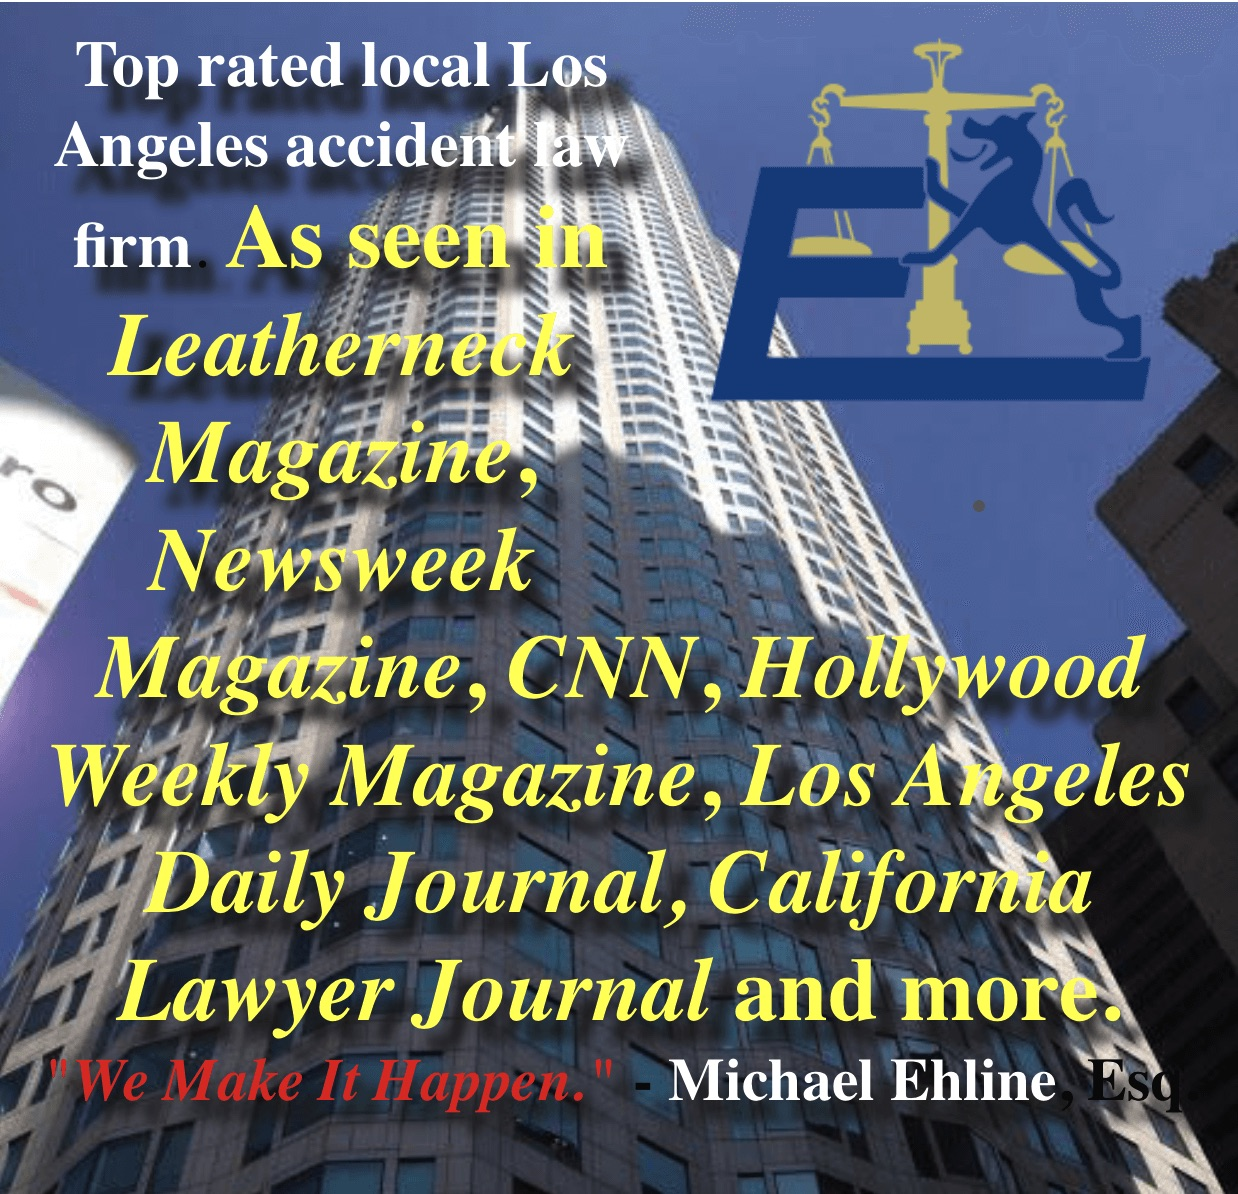 Ehline Law Firm Personal Injury Attorneys, APLC are top-rated Los Angeles Car Accident Attorneys in the local News.